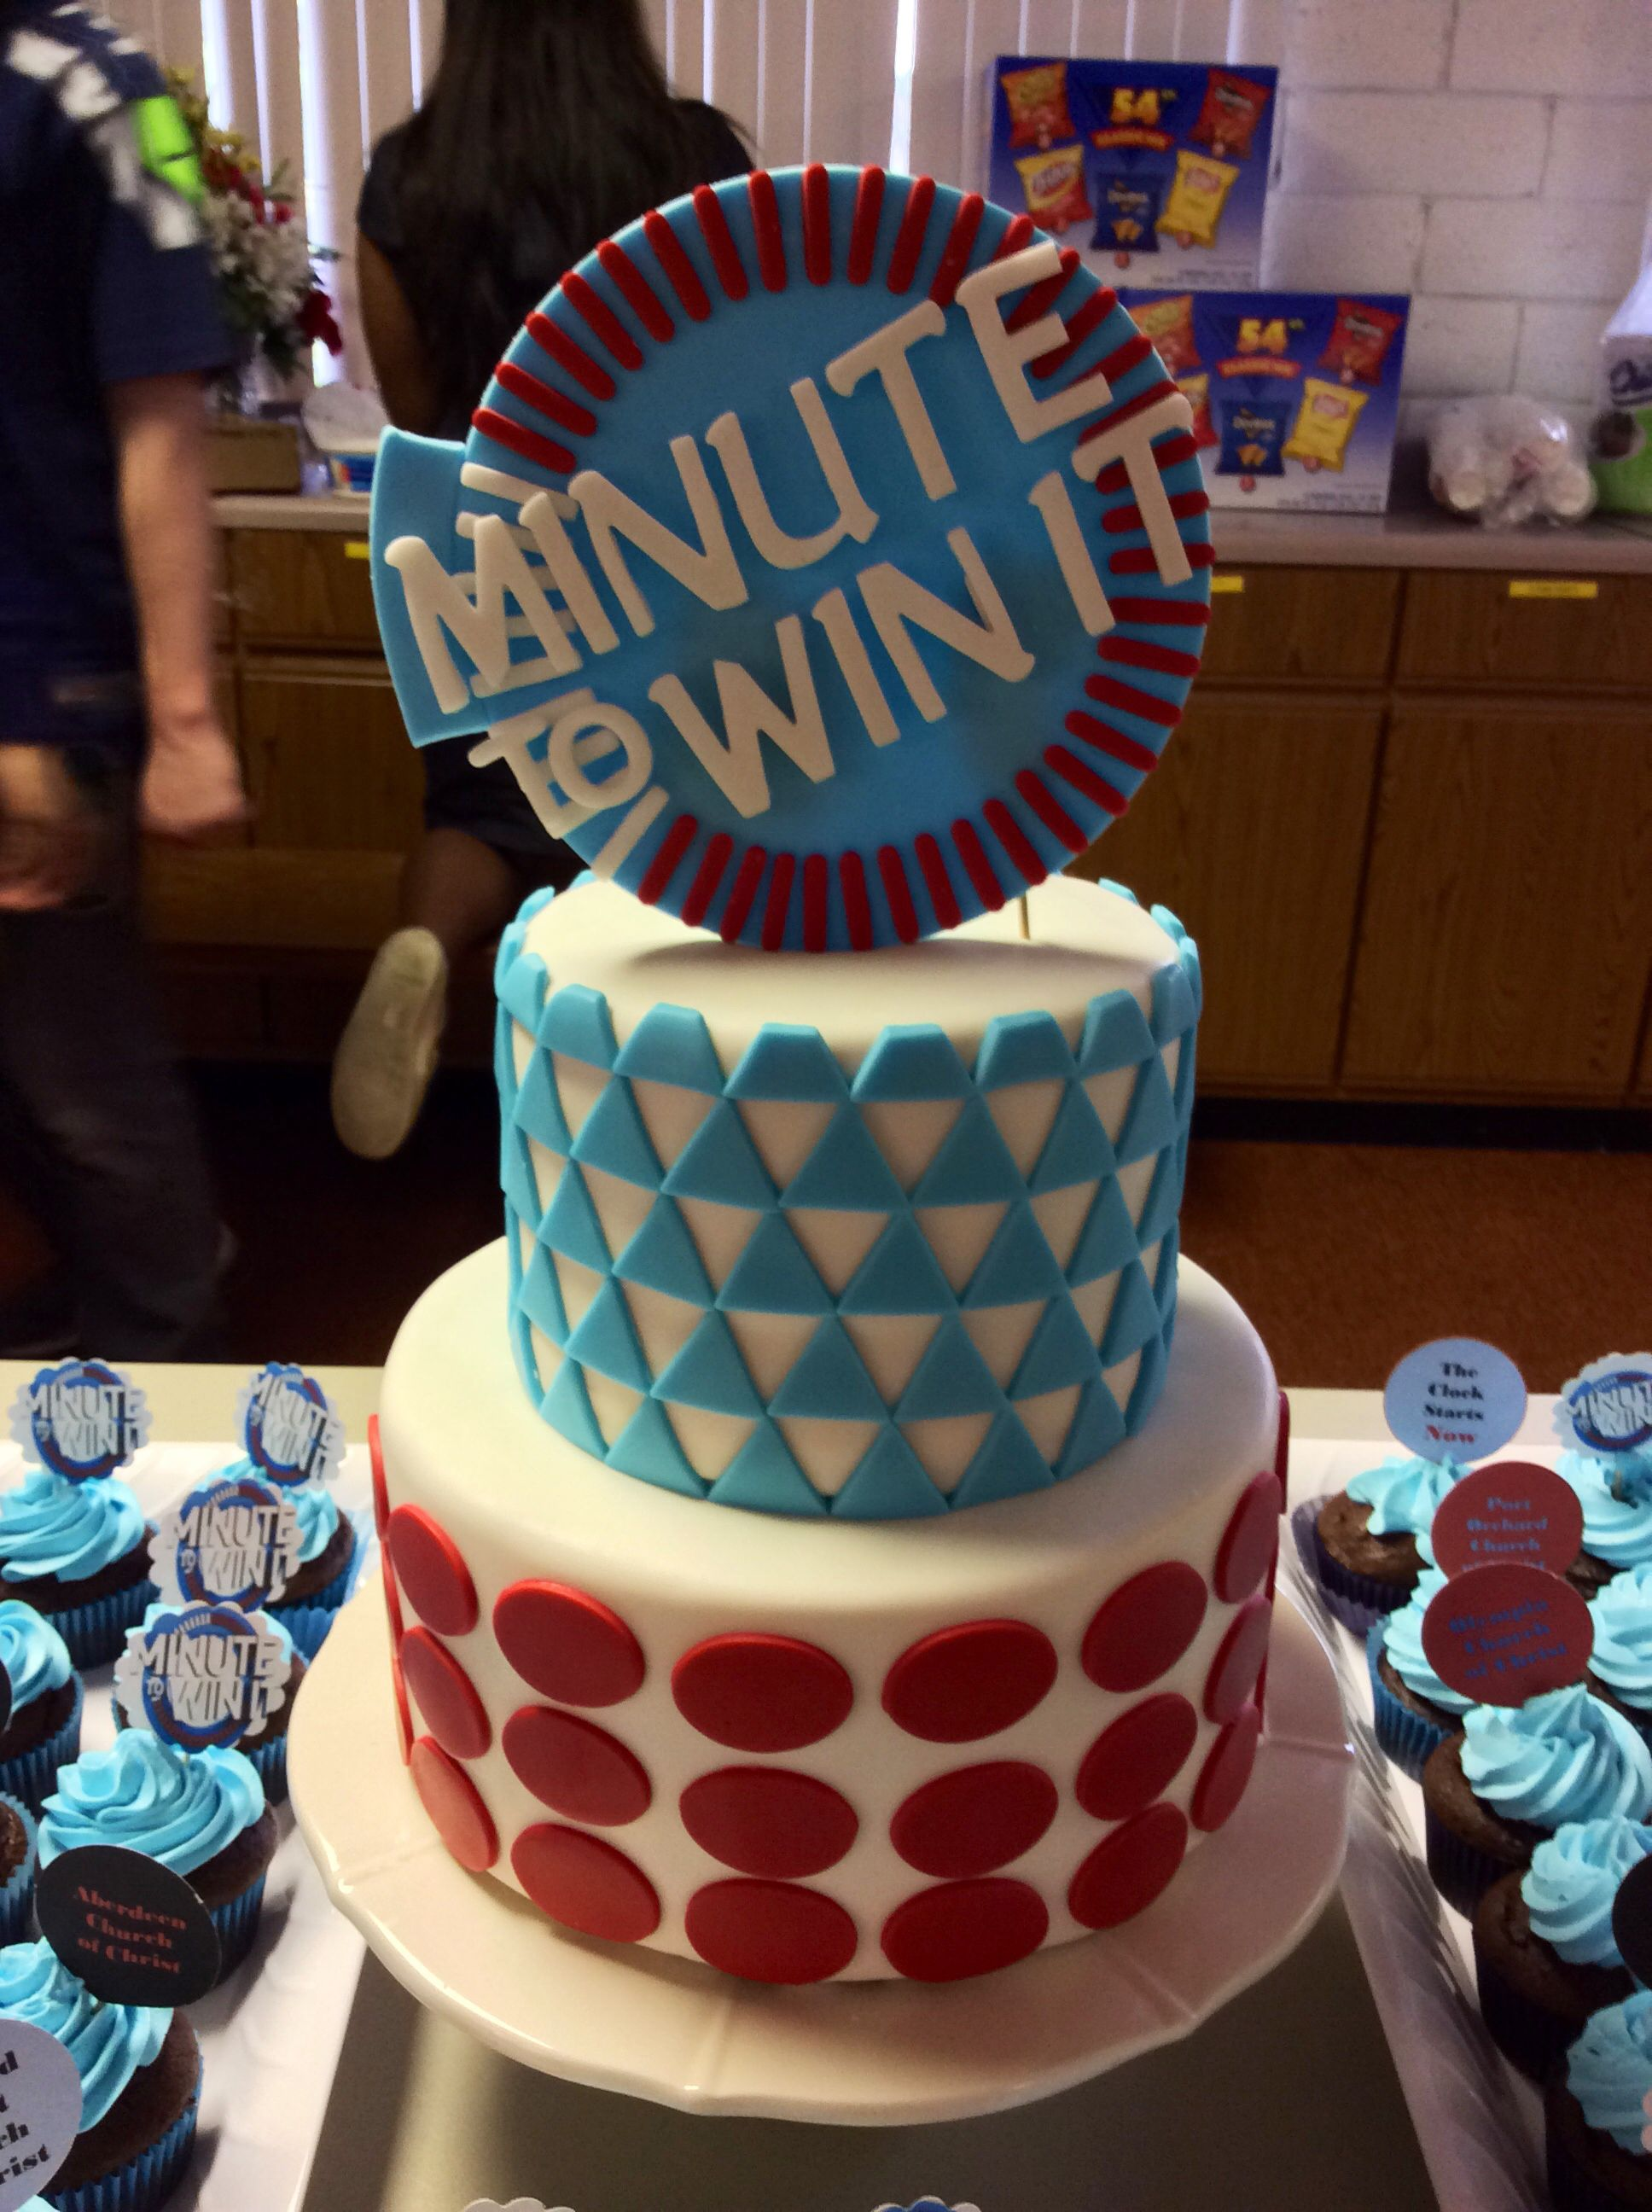 Minute to win it cake.. (With images) | Birthday cakes for ...